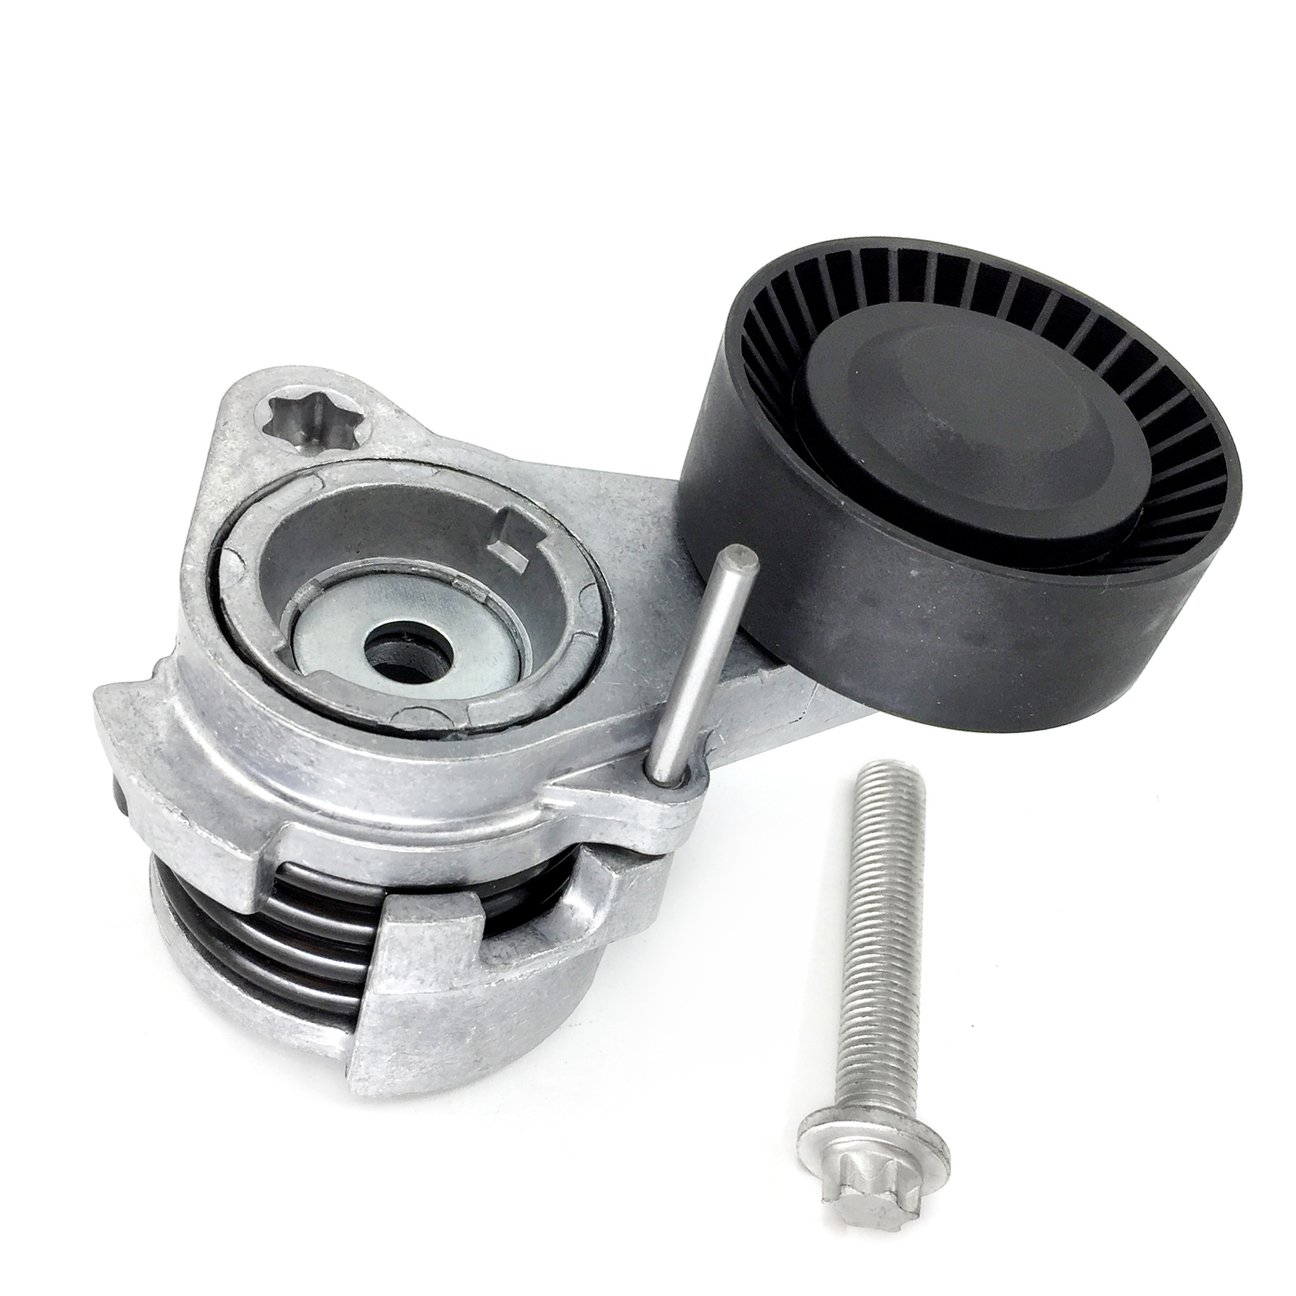 Skp Skapv2529 Belt Tensioner Fits Select Years Of Bmw 2005 525i Timing 330xi 330i 325i 530i 530xi 525xi 325xi Z4 323i 328i 328xi X3 X5 528i 528xi 128i